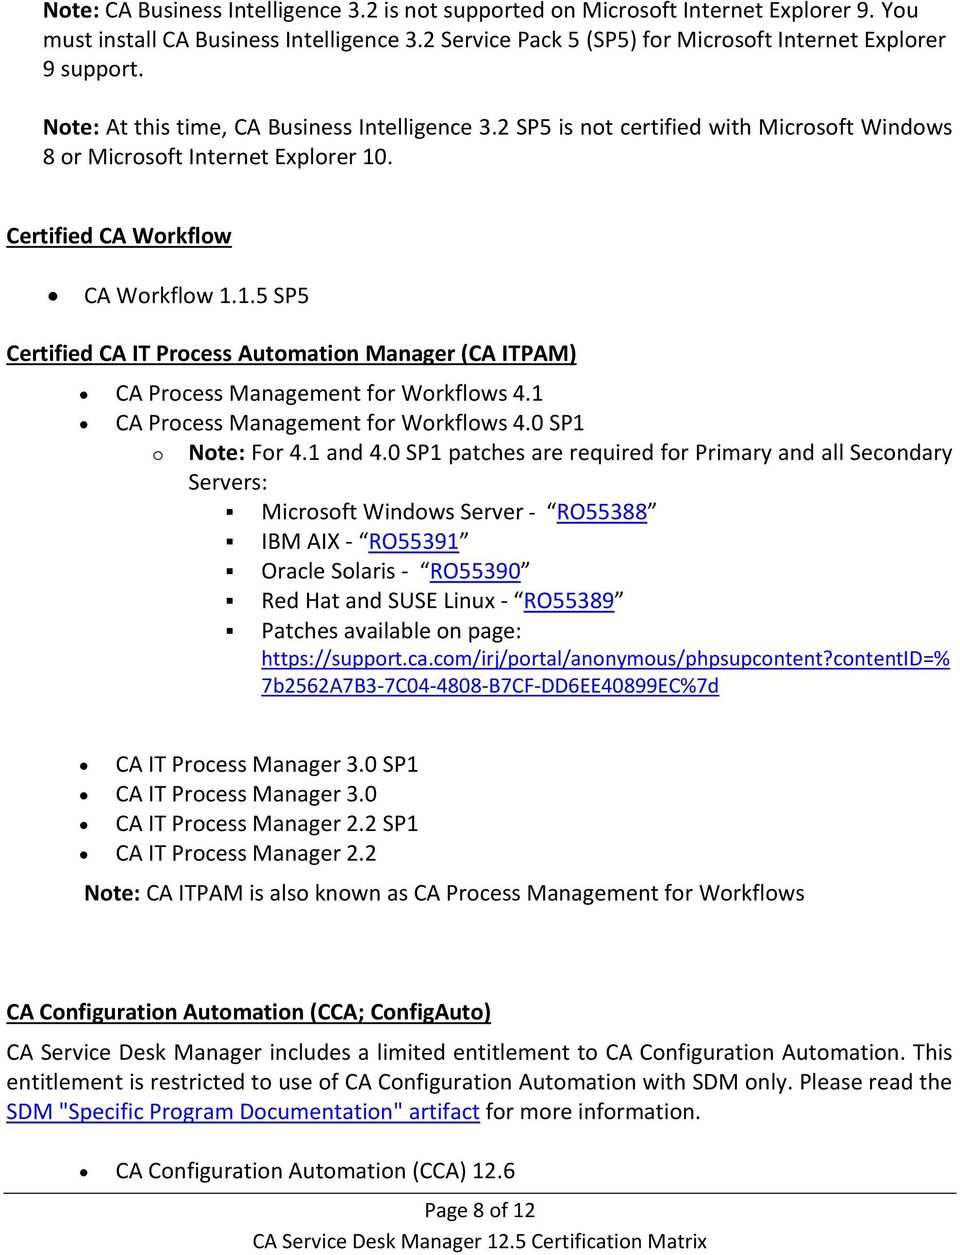 . Certified CA Workflow CA Workflow 1.1.5 SP5 Certified CA IT Process Automation Manager (CA ITPAM) CA Process Management for Workflows 4.1 CA Process Management for Workflows 4.0 SP1 o Note: For 4.